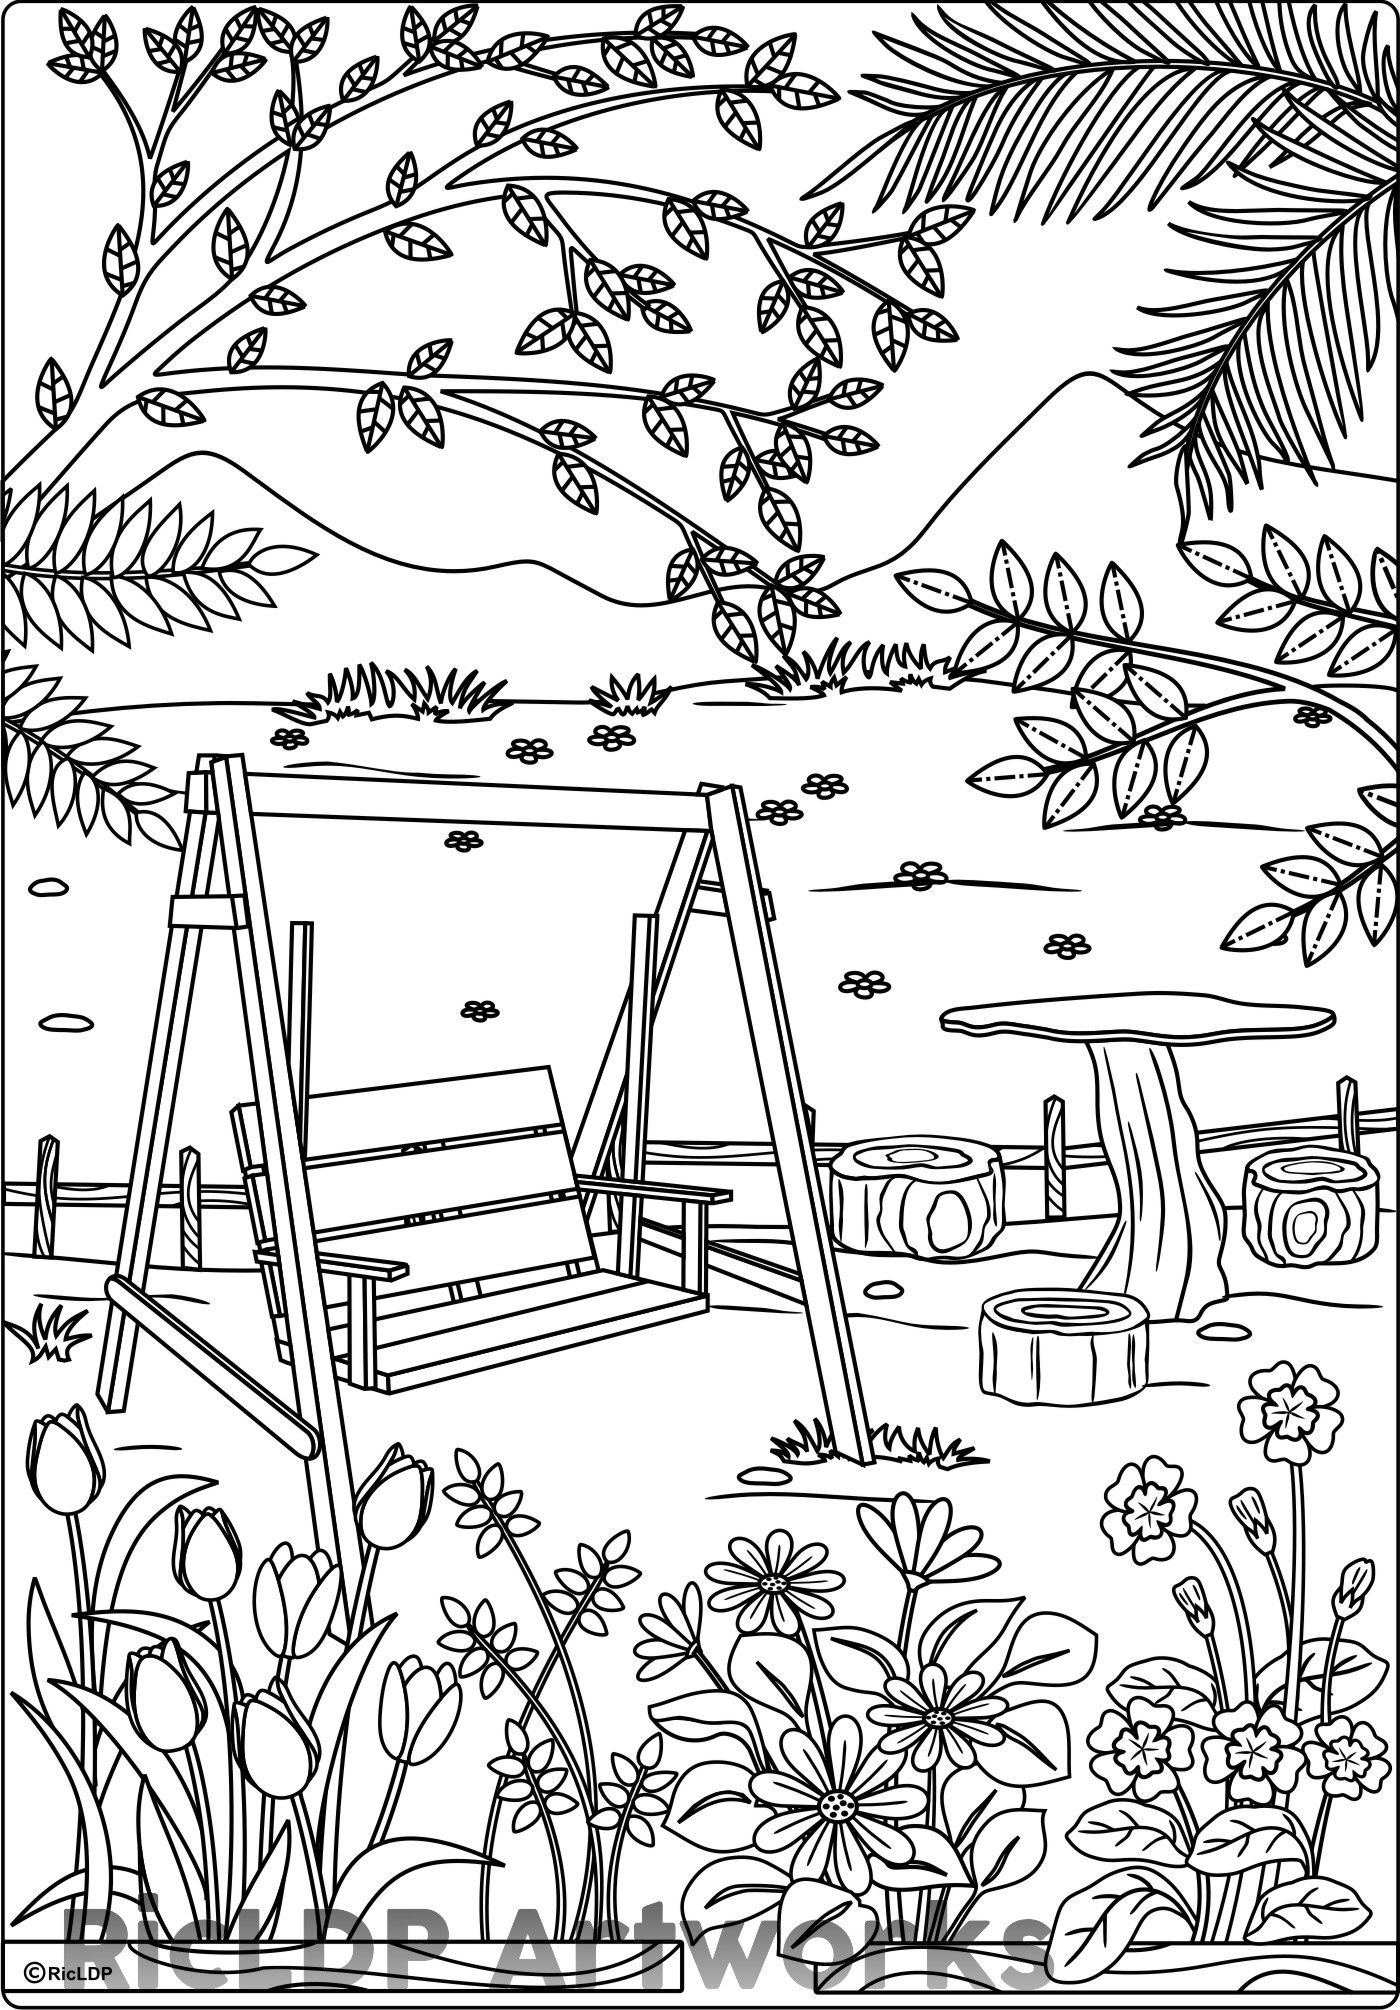 At The Park Coloring Page For Adults Com Imagens Desenhos